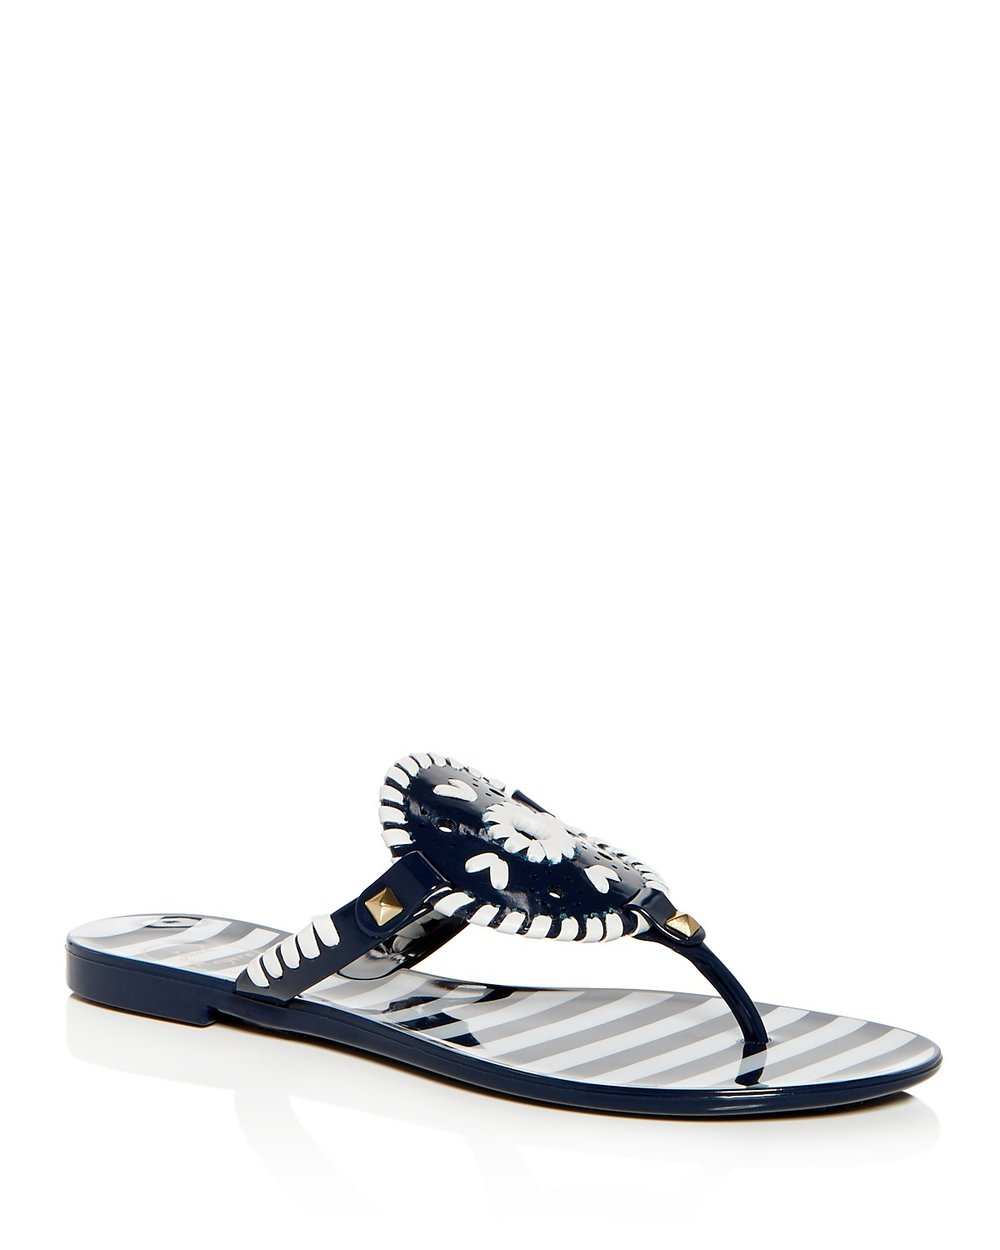 Women's Georgica Striped Jelly Thong Sandals - JACK ROGERS